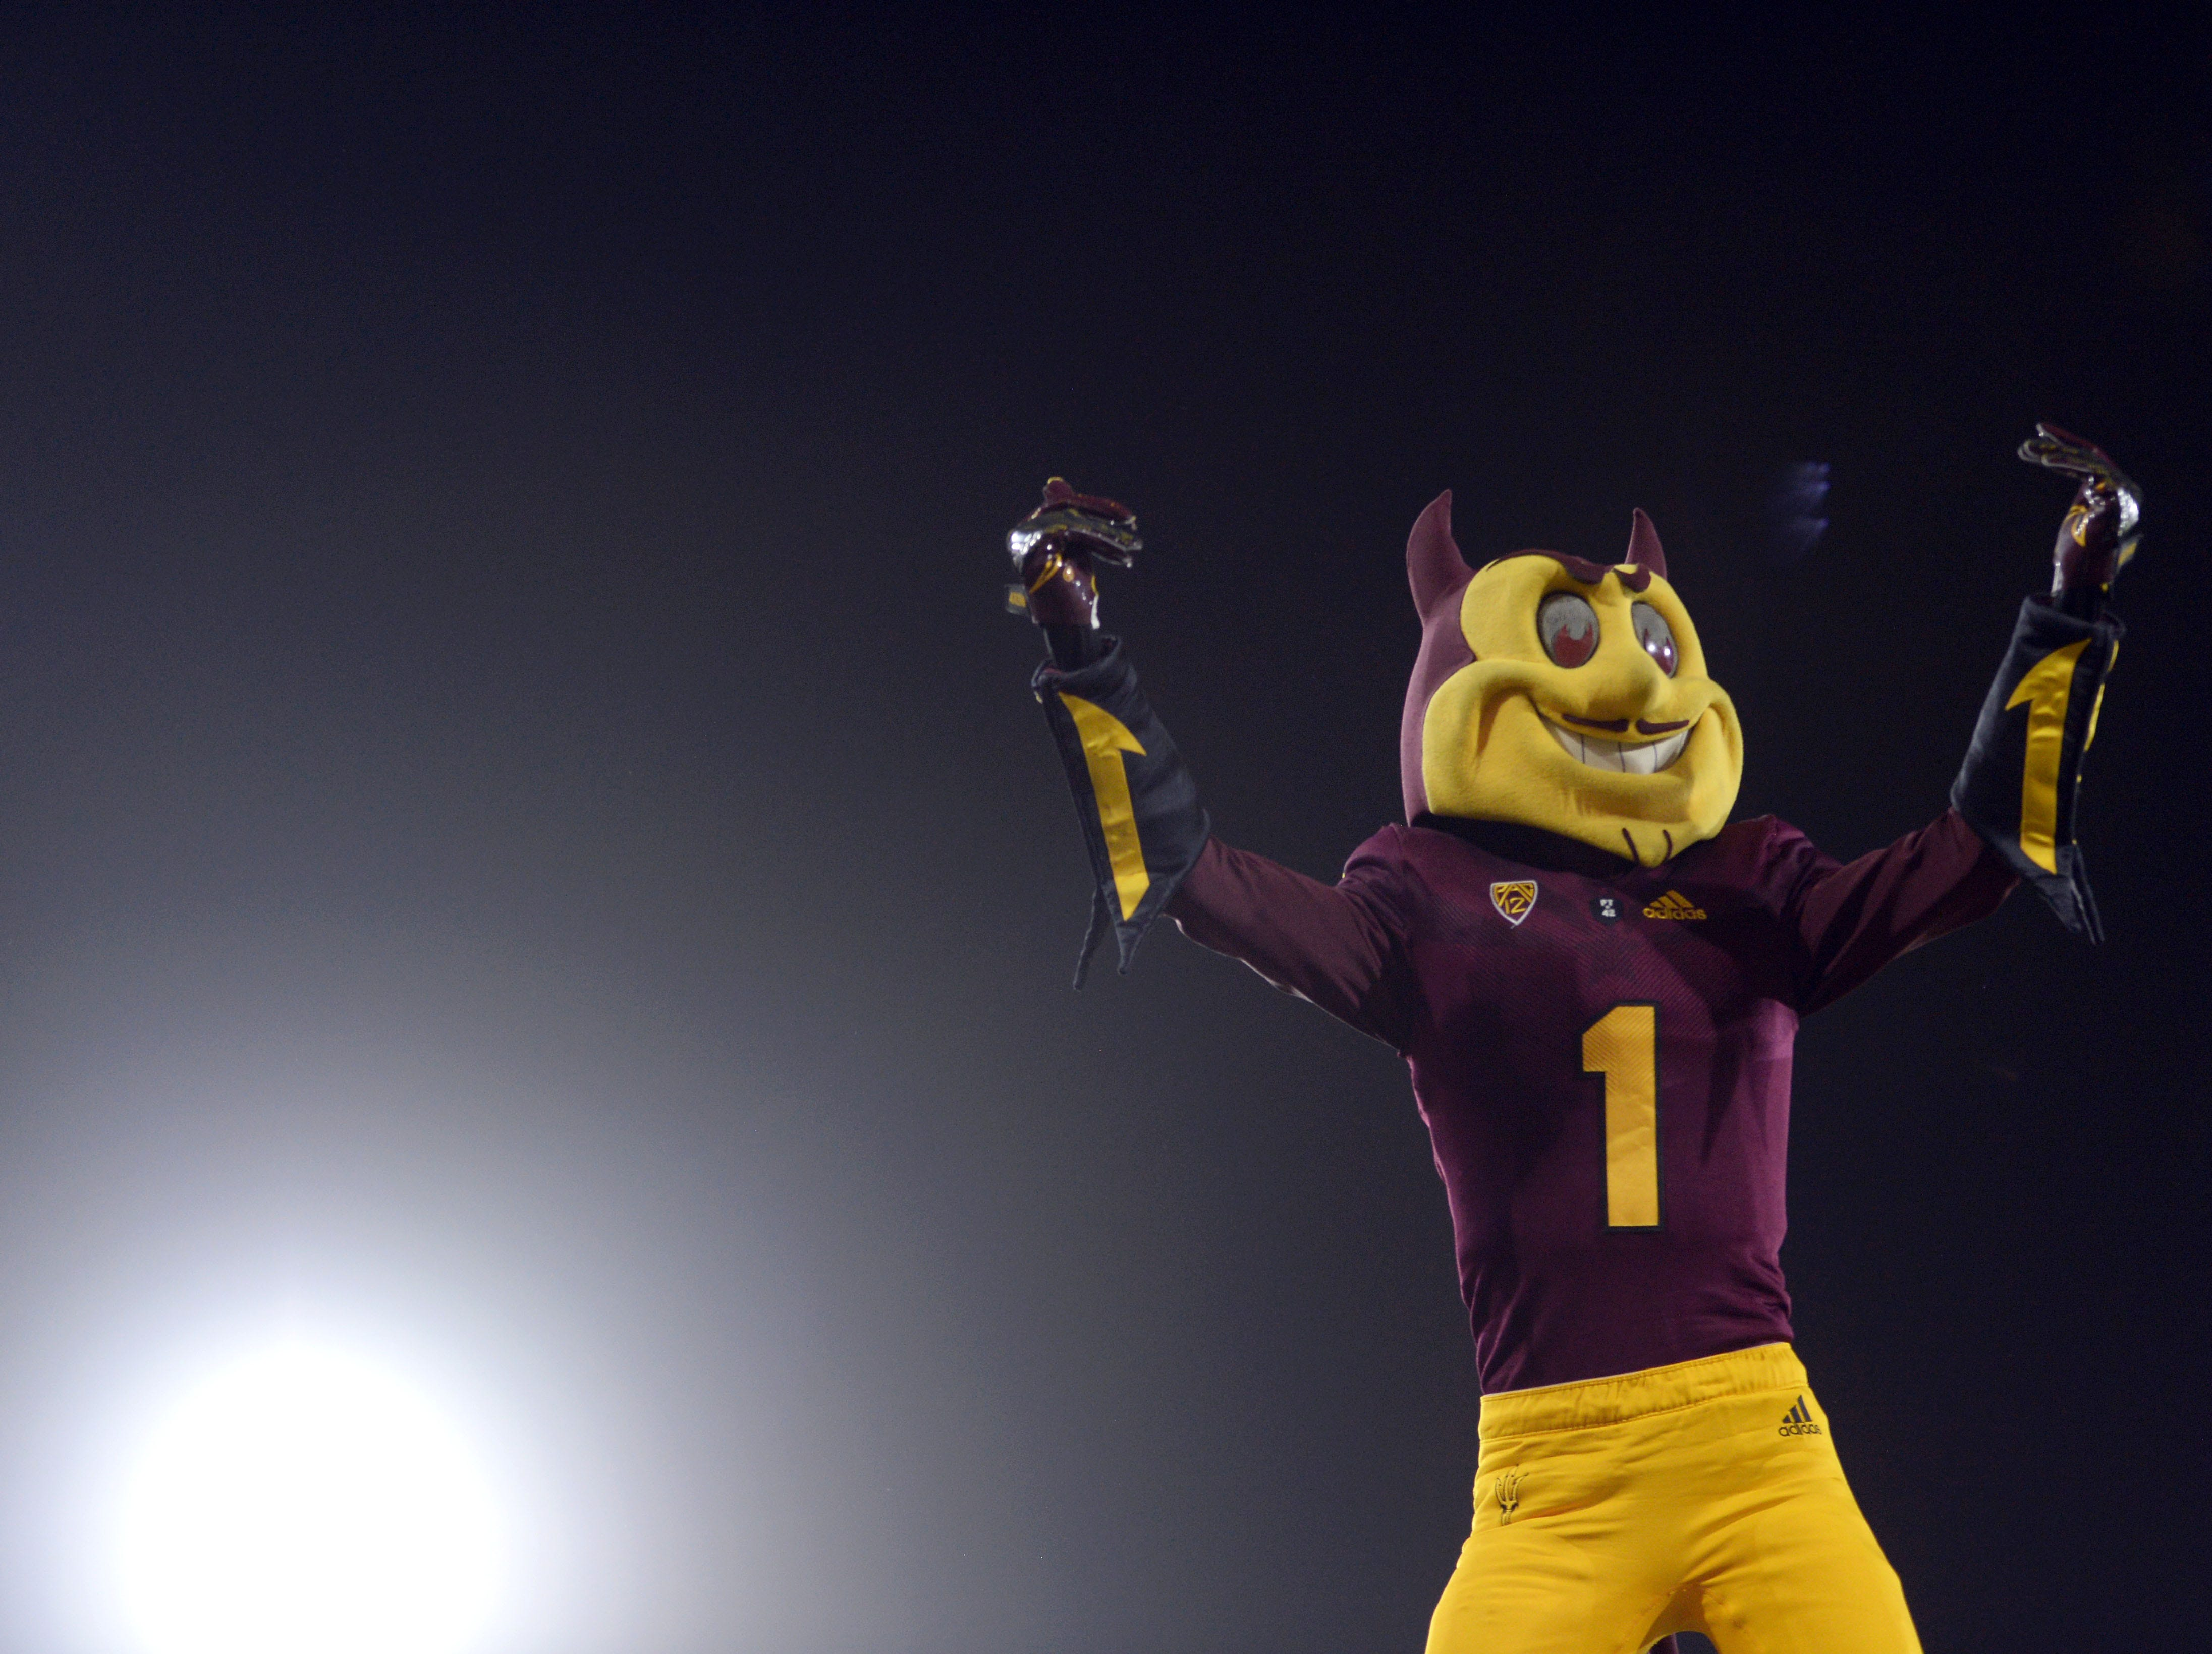 Week 1: Arizona State mascot Sparky celebrates during the first half against the UTSA Roadrunners at Sun Devil Stadium.